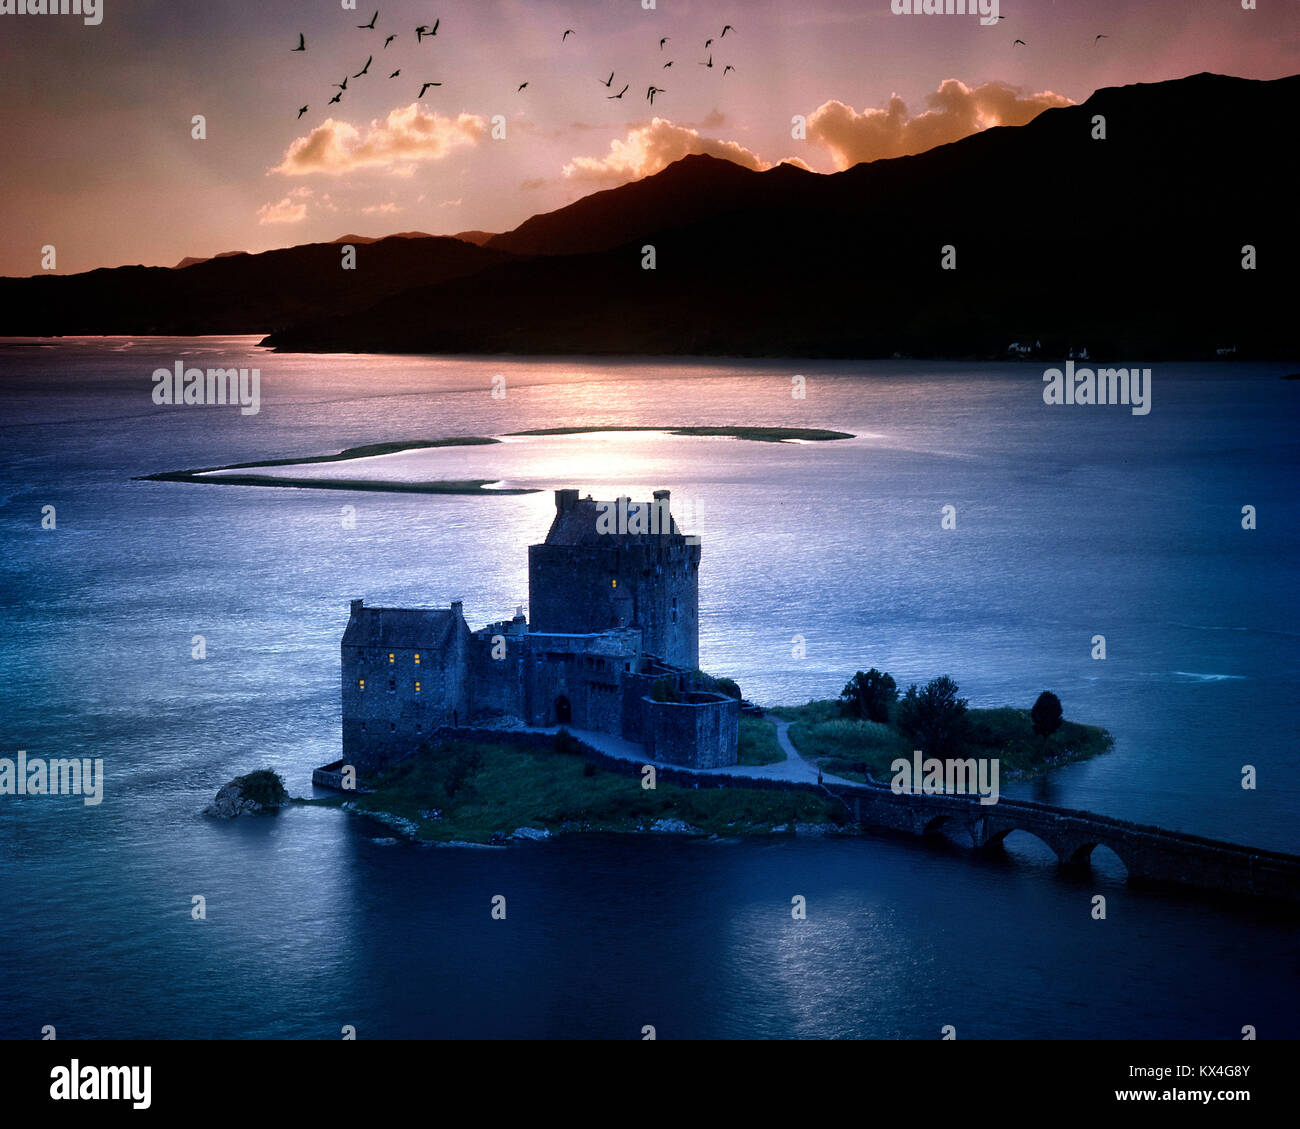 GB - SCOTLAND: Eilean Donan Castle and Loch Duich at sunset - Stock Image